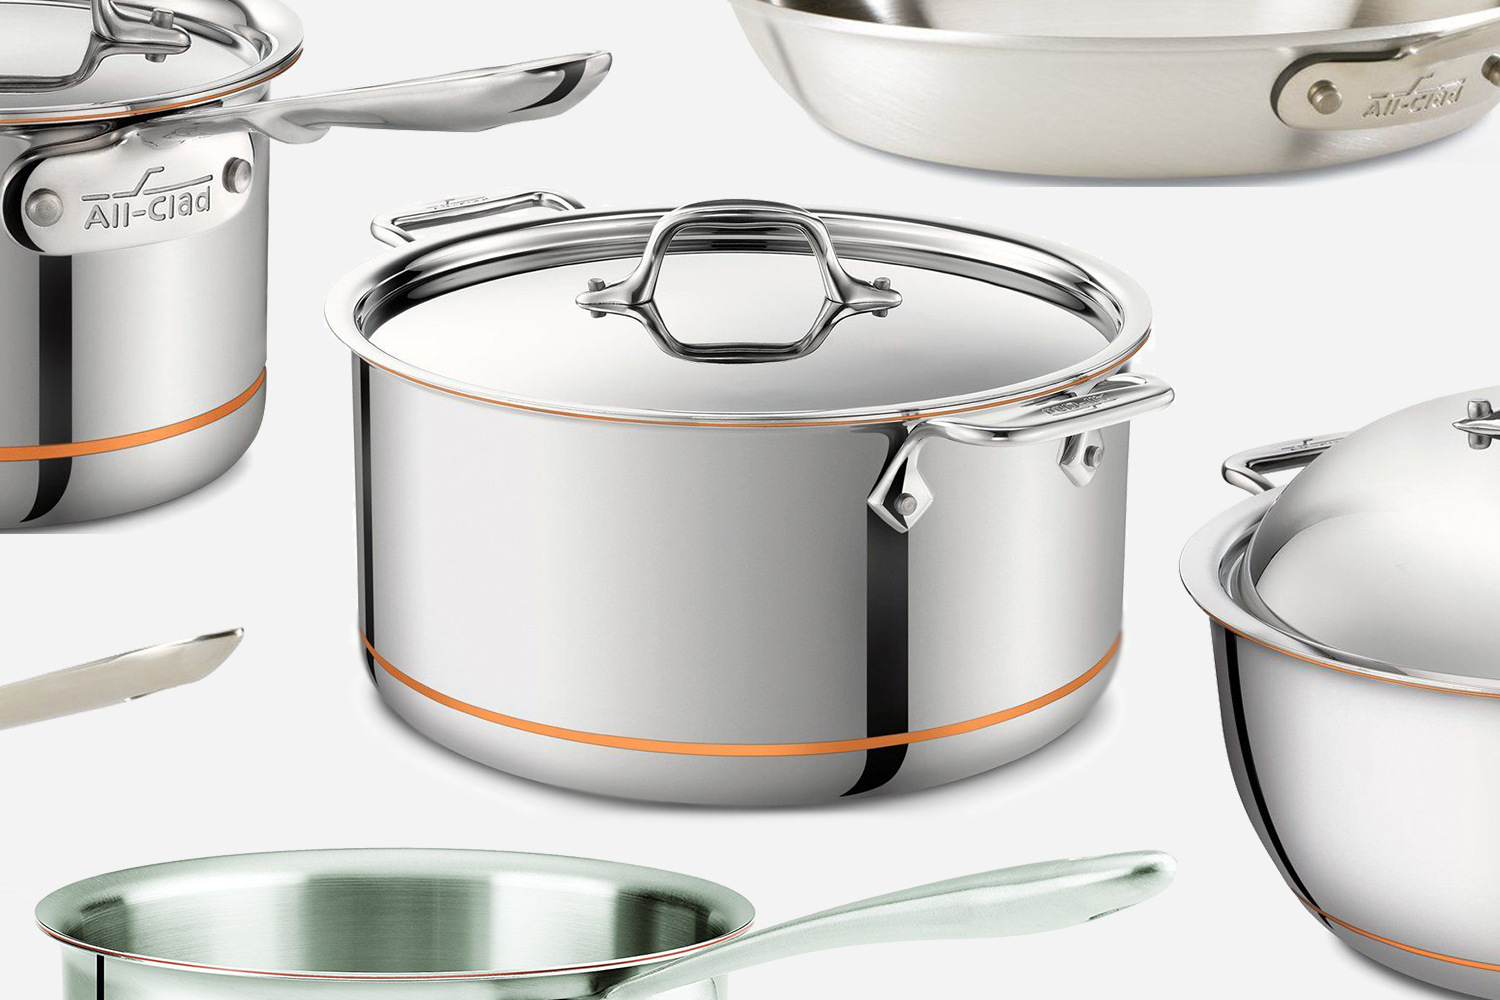 All-Clad Cookware Pots and Pans